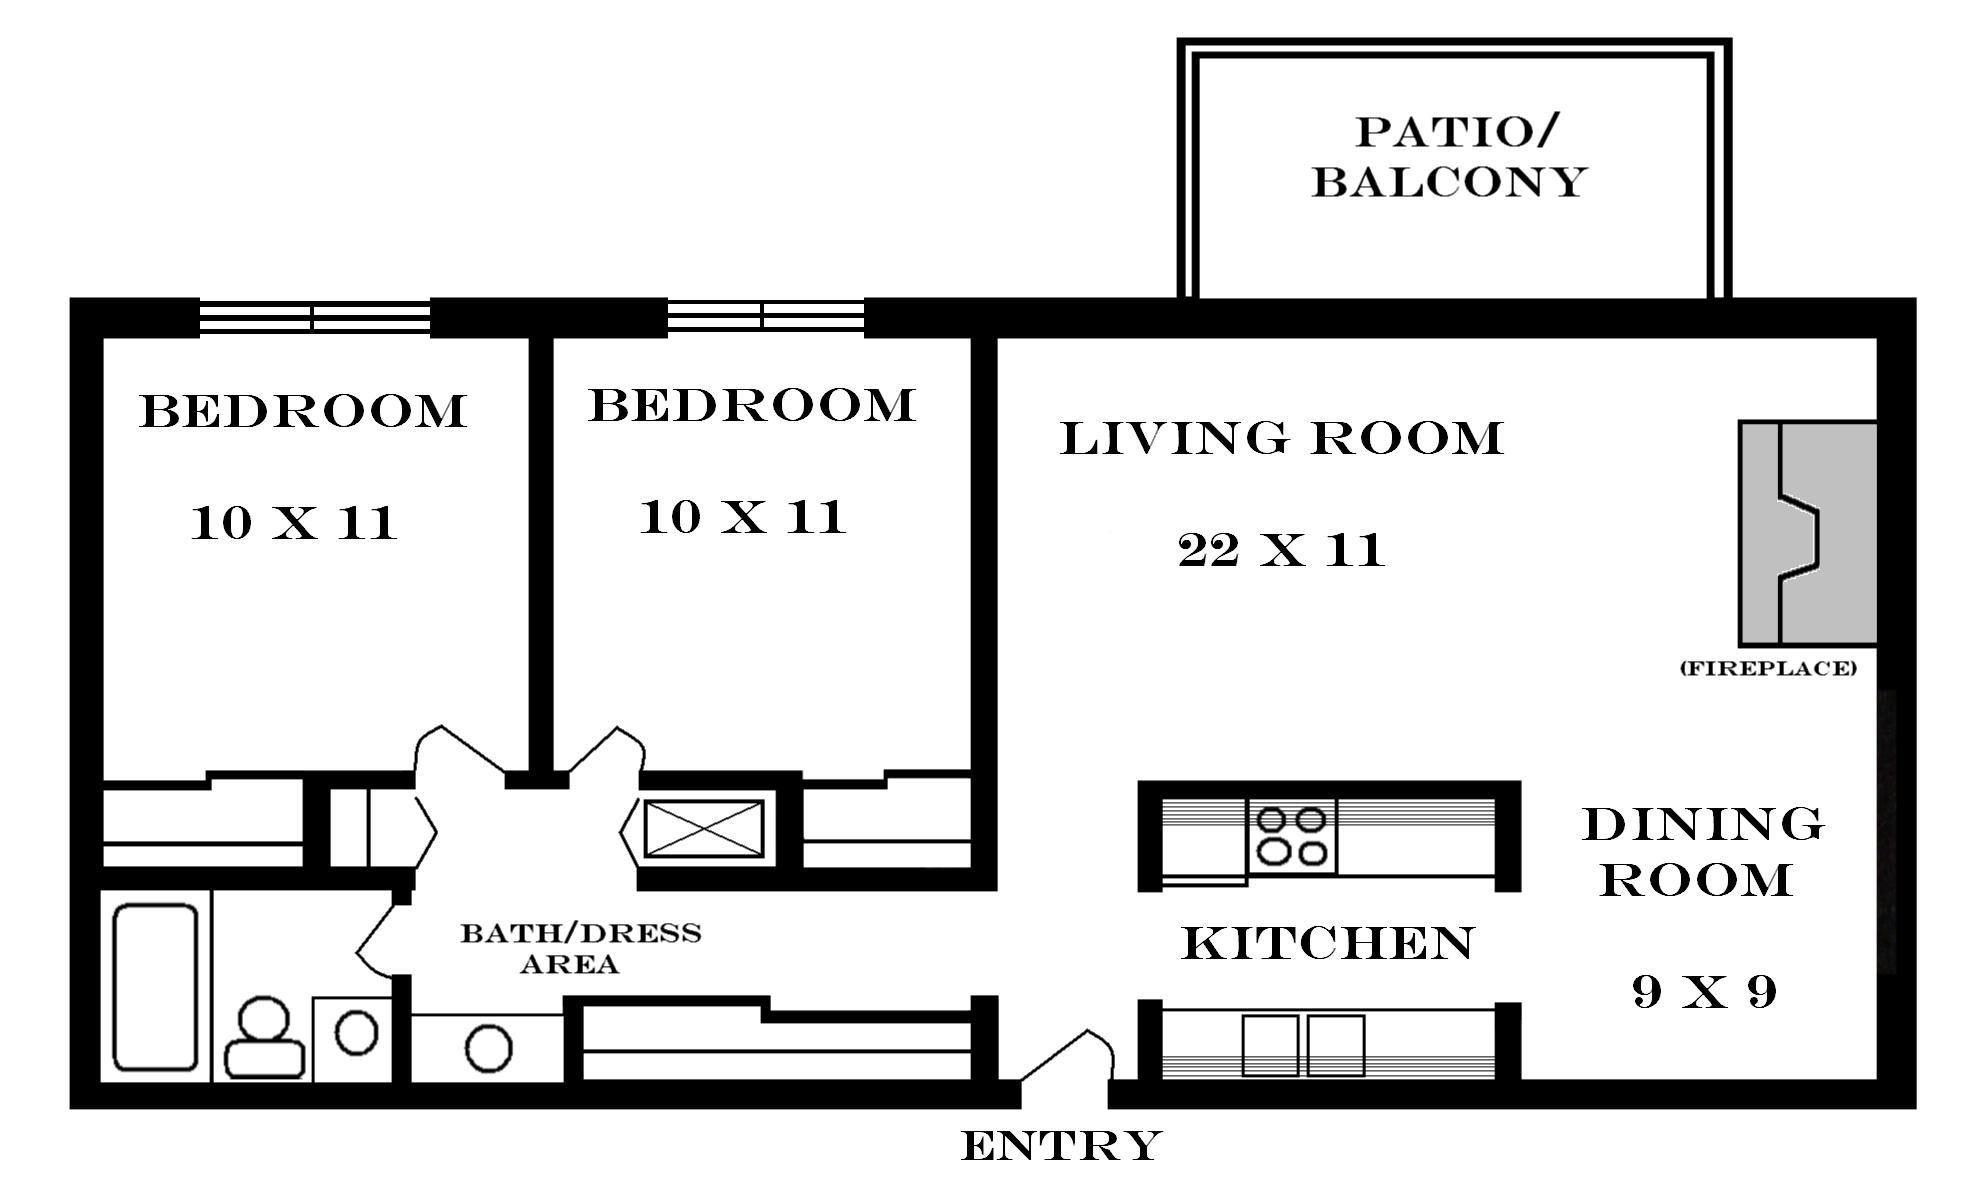 Small house floor plans 2 bedrooms 900 tiny houses for Two bedroom tiny home